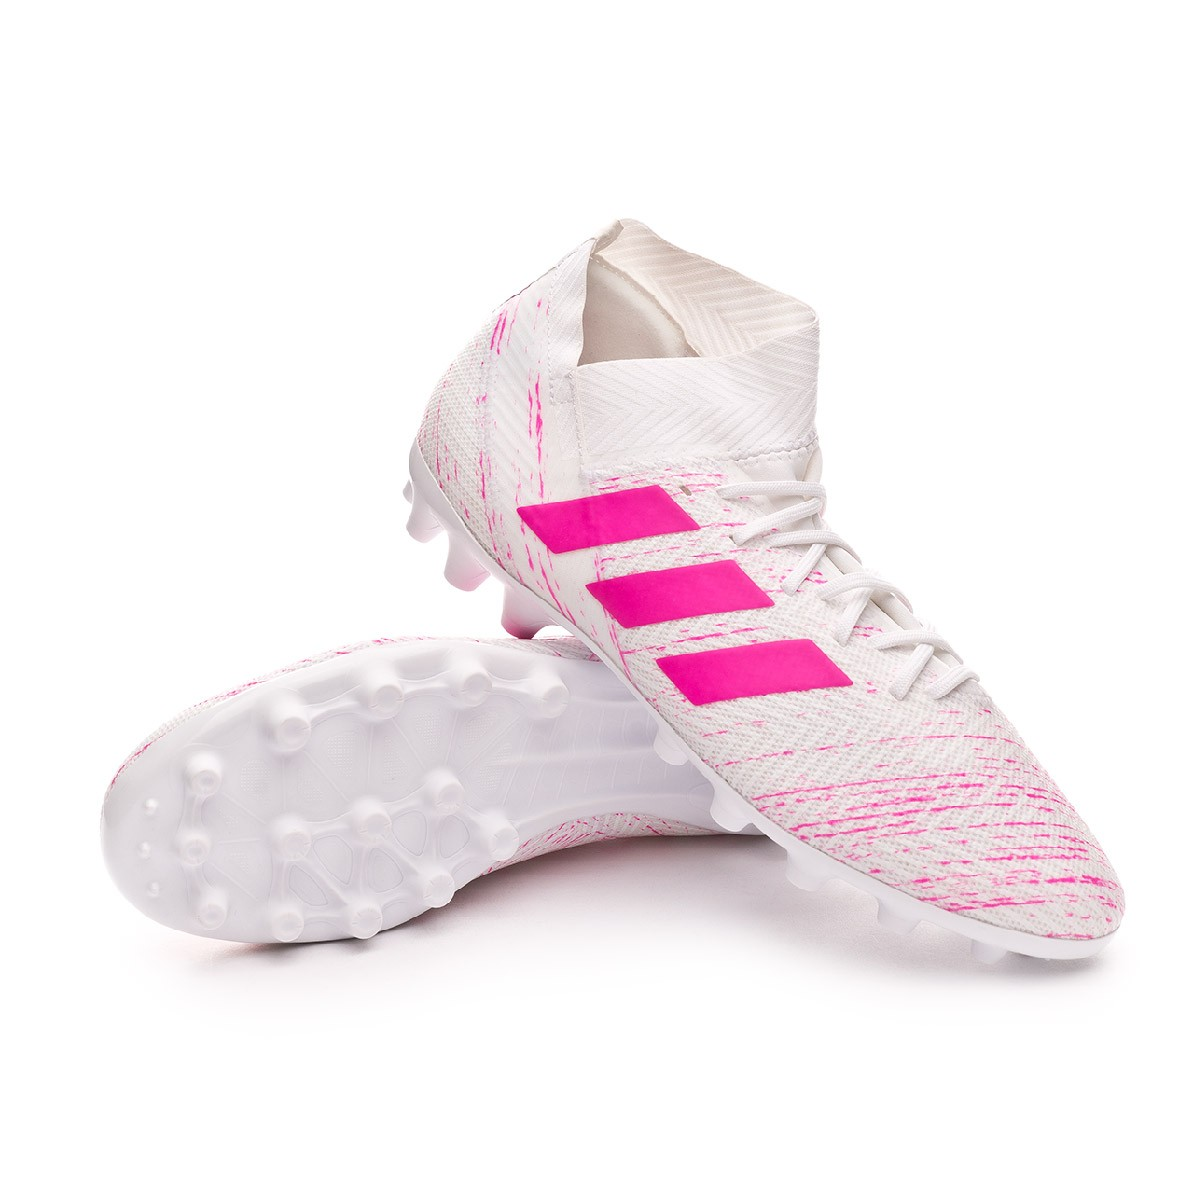 Sumergir Celsius Talentoso  Football Boots adidas Nemeziz 18.3 AG White-Shock pink - Football store  Fútbol Emotion